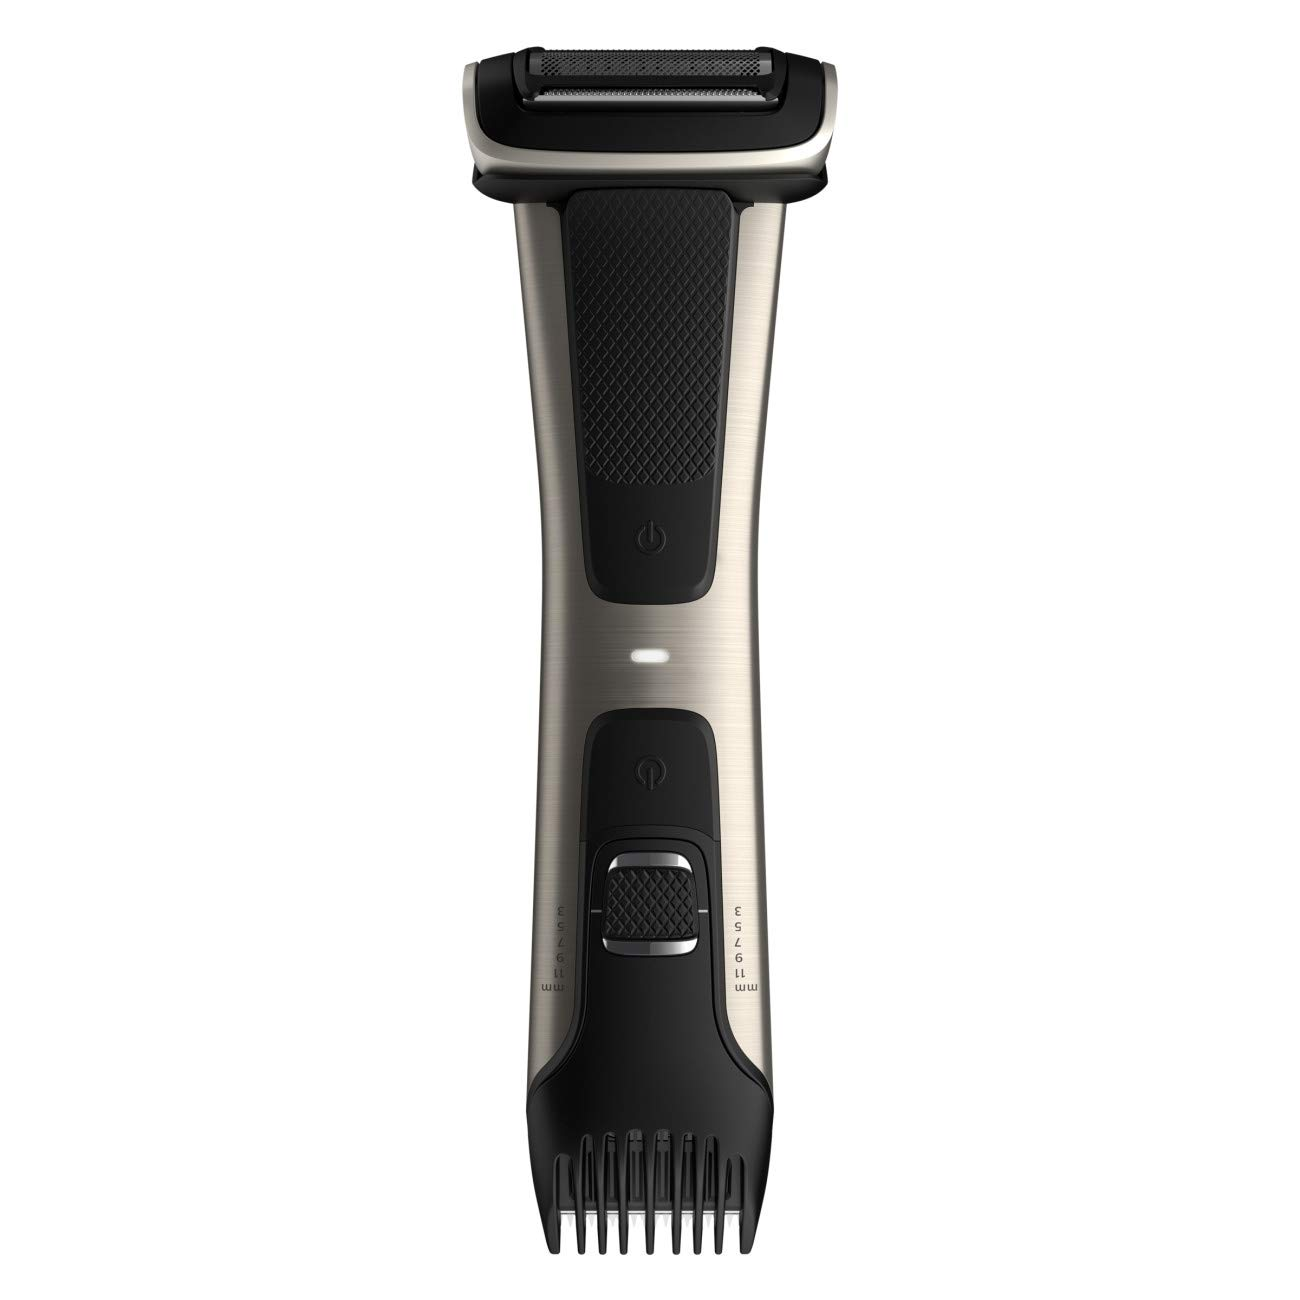 Philips Norelco Bodygroom Series 7000 Body Trimmer and Shaver; how to manscape